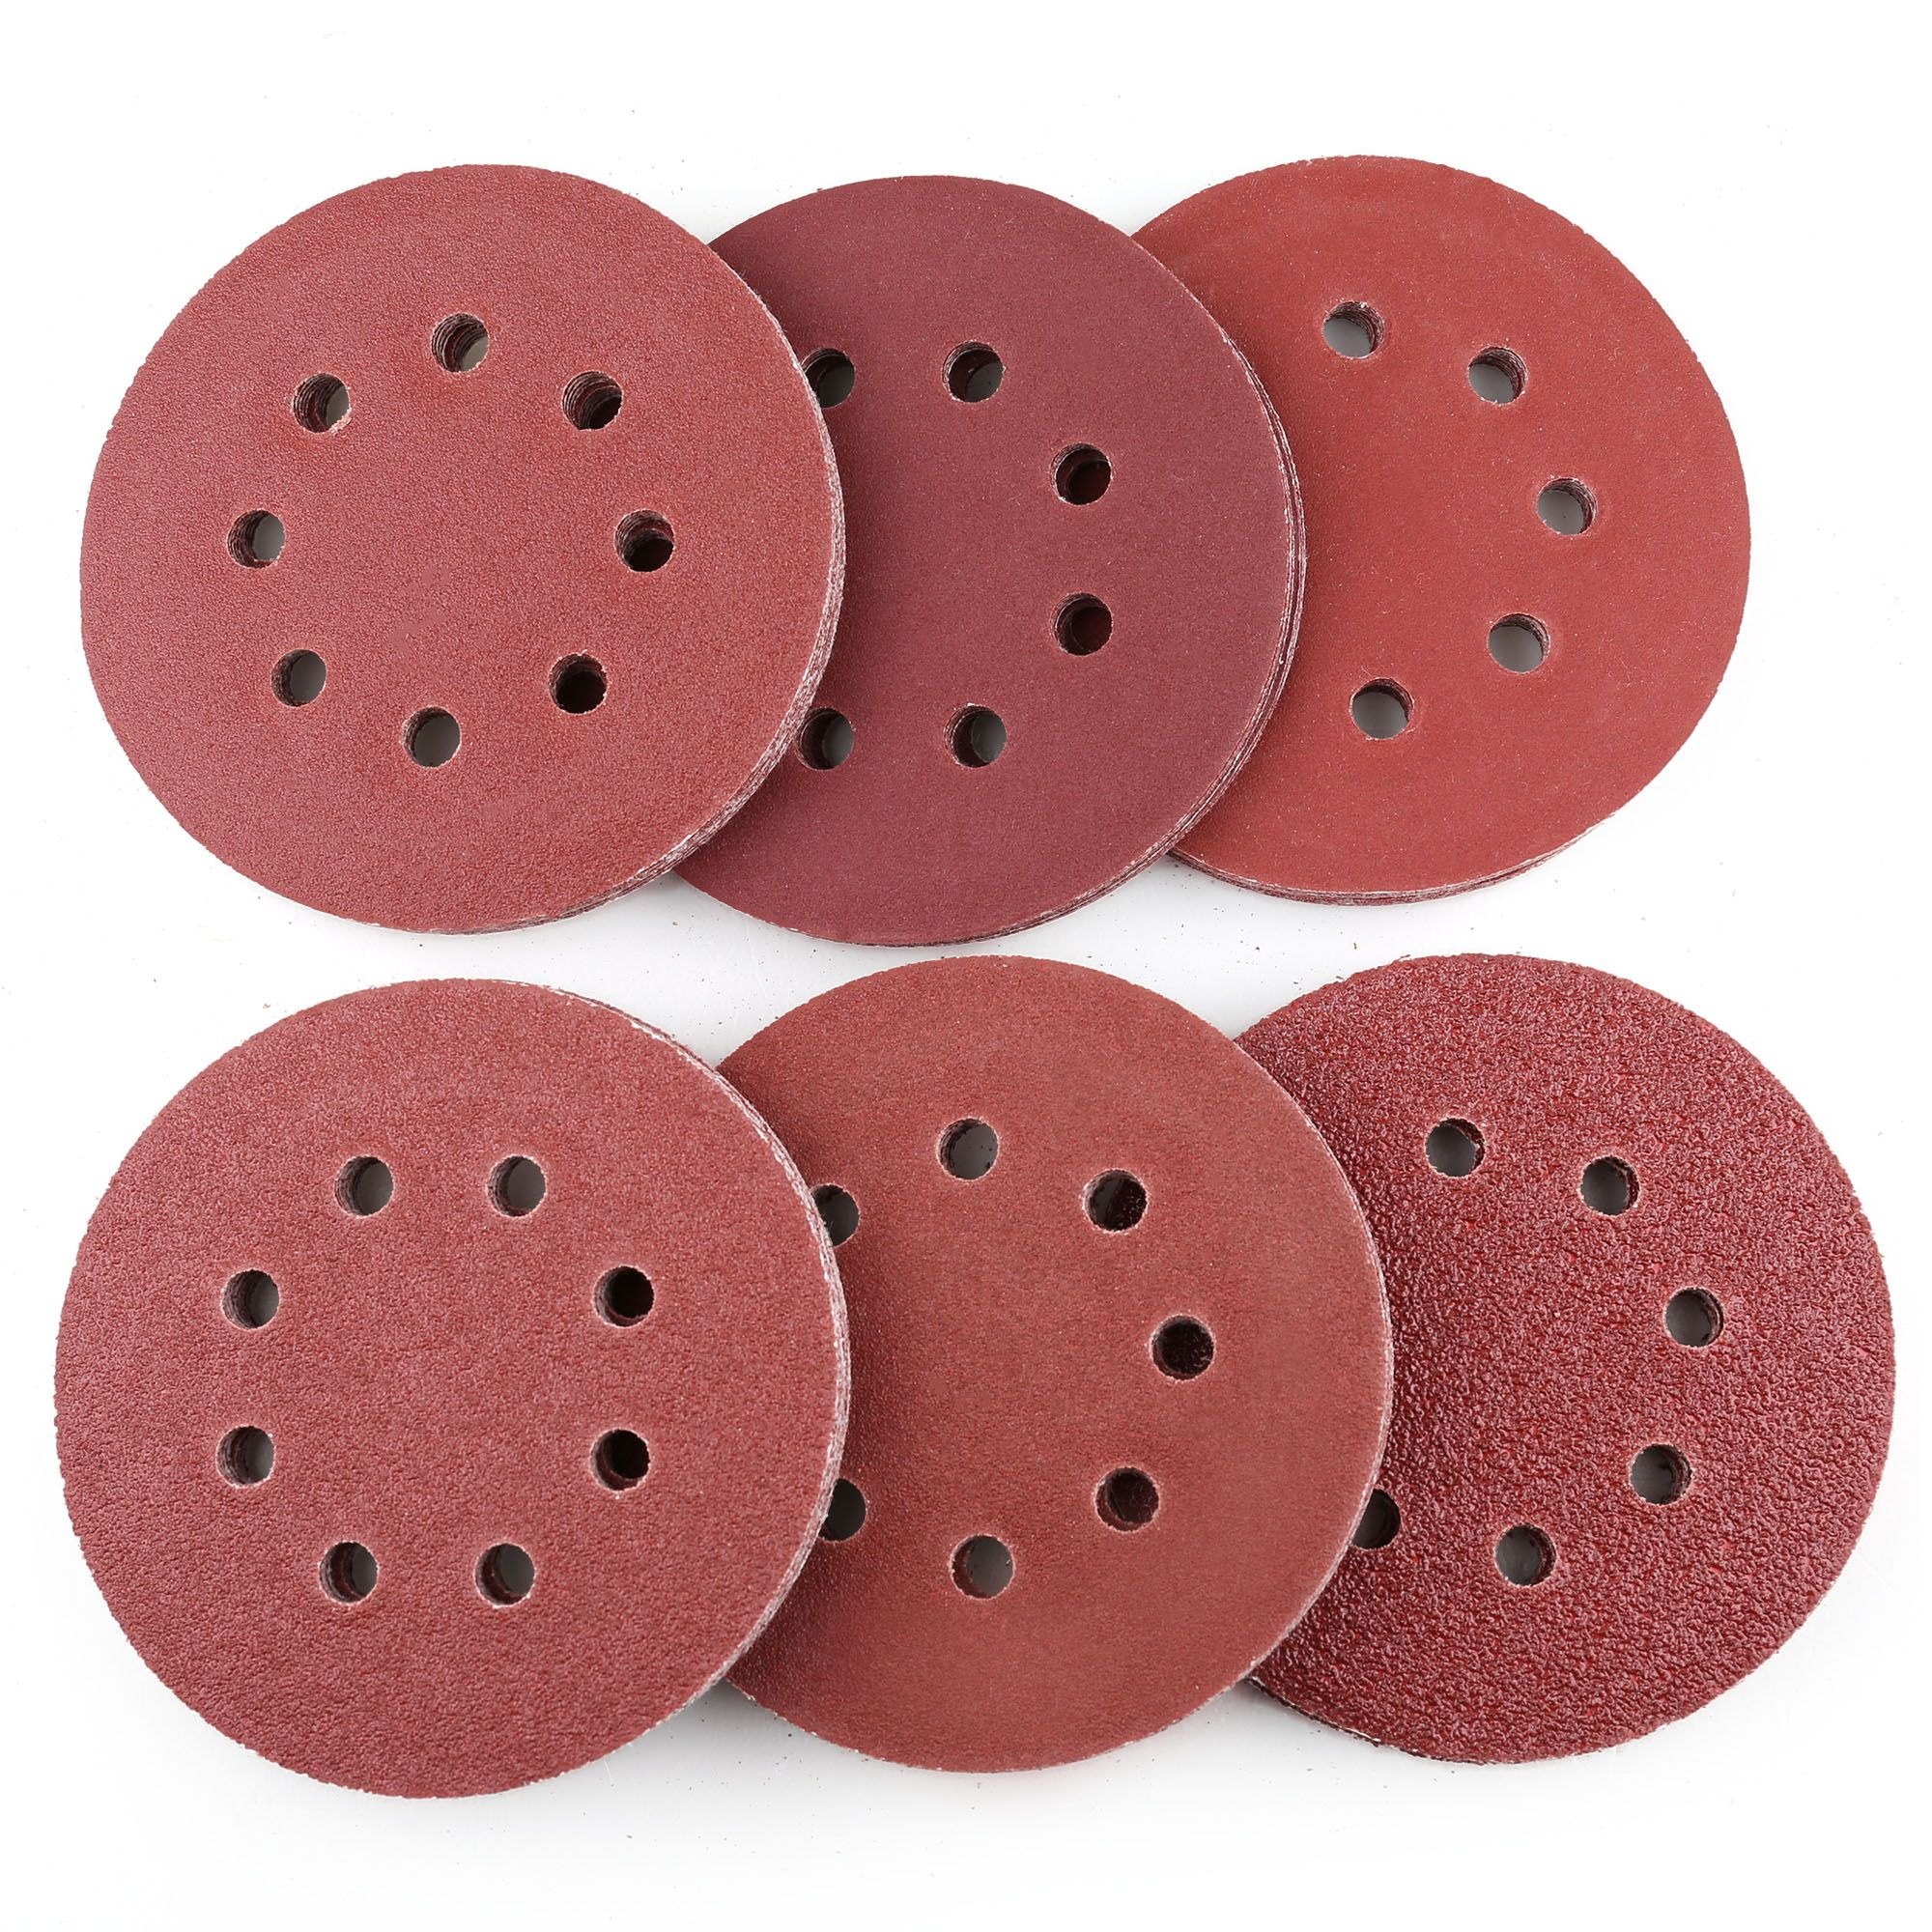 30 PCS,Yellow MAXMAN 5-Inch 8-Hole Sanding Discs,Dustless Hook and Loop,Premium Abrasive Aluminum Oxide Orbital Sandpaper 1000 Grit